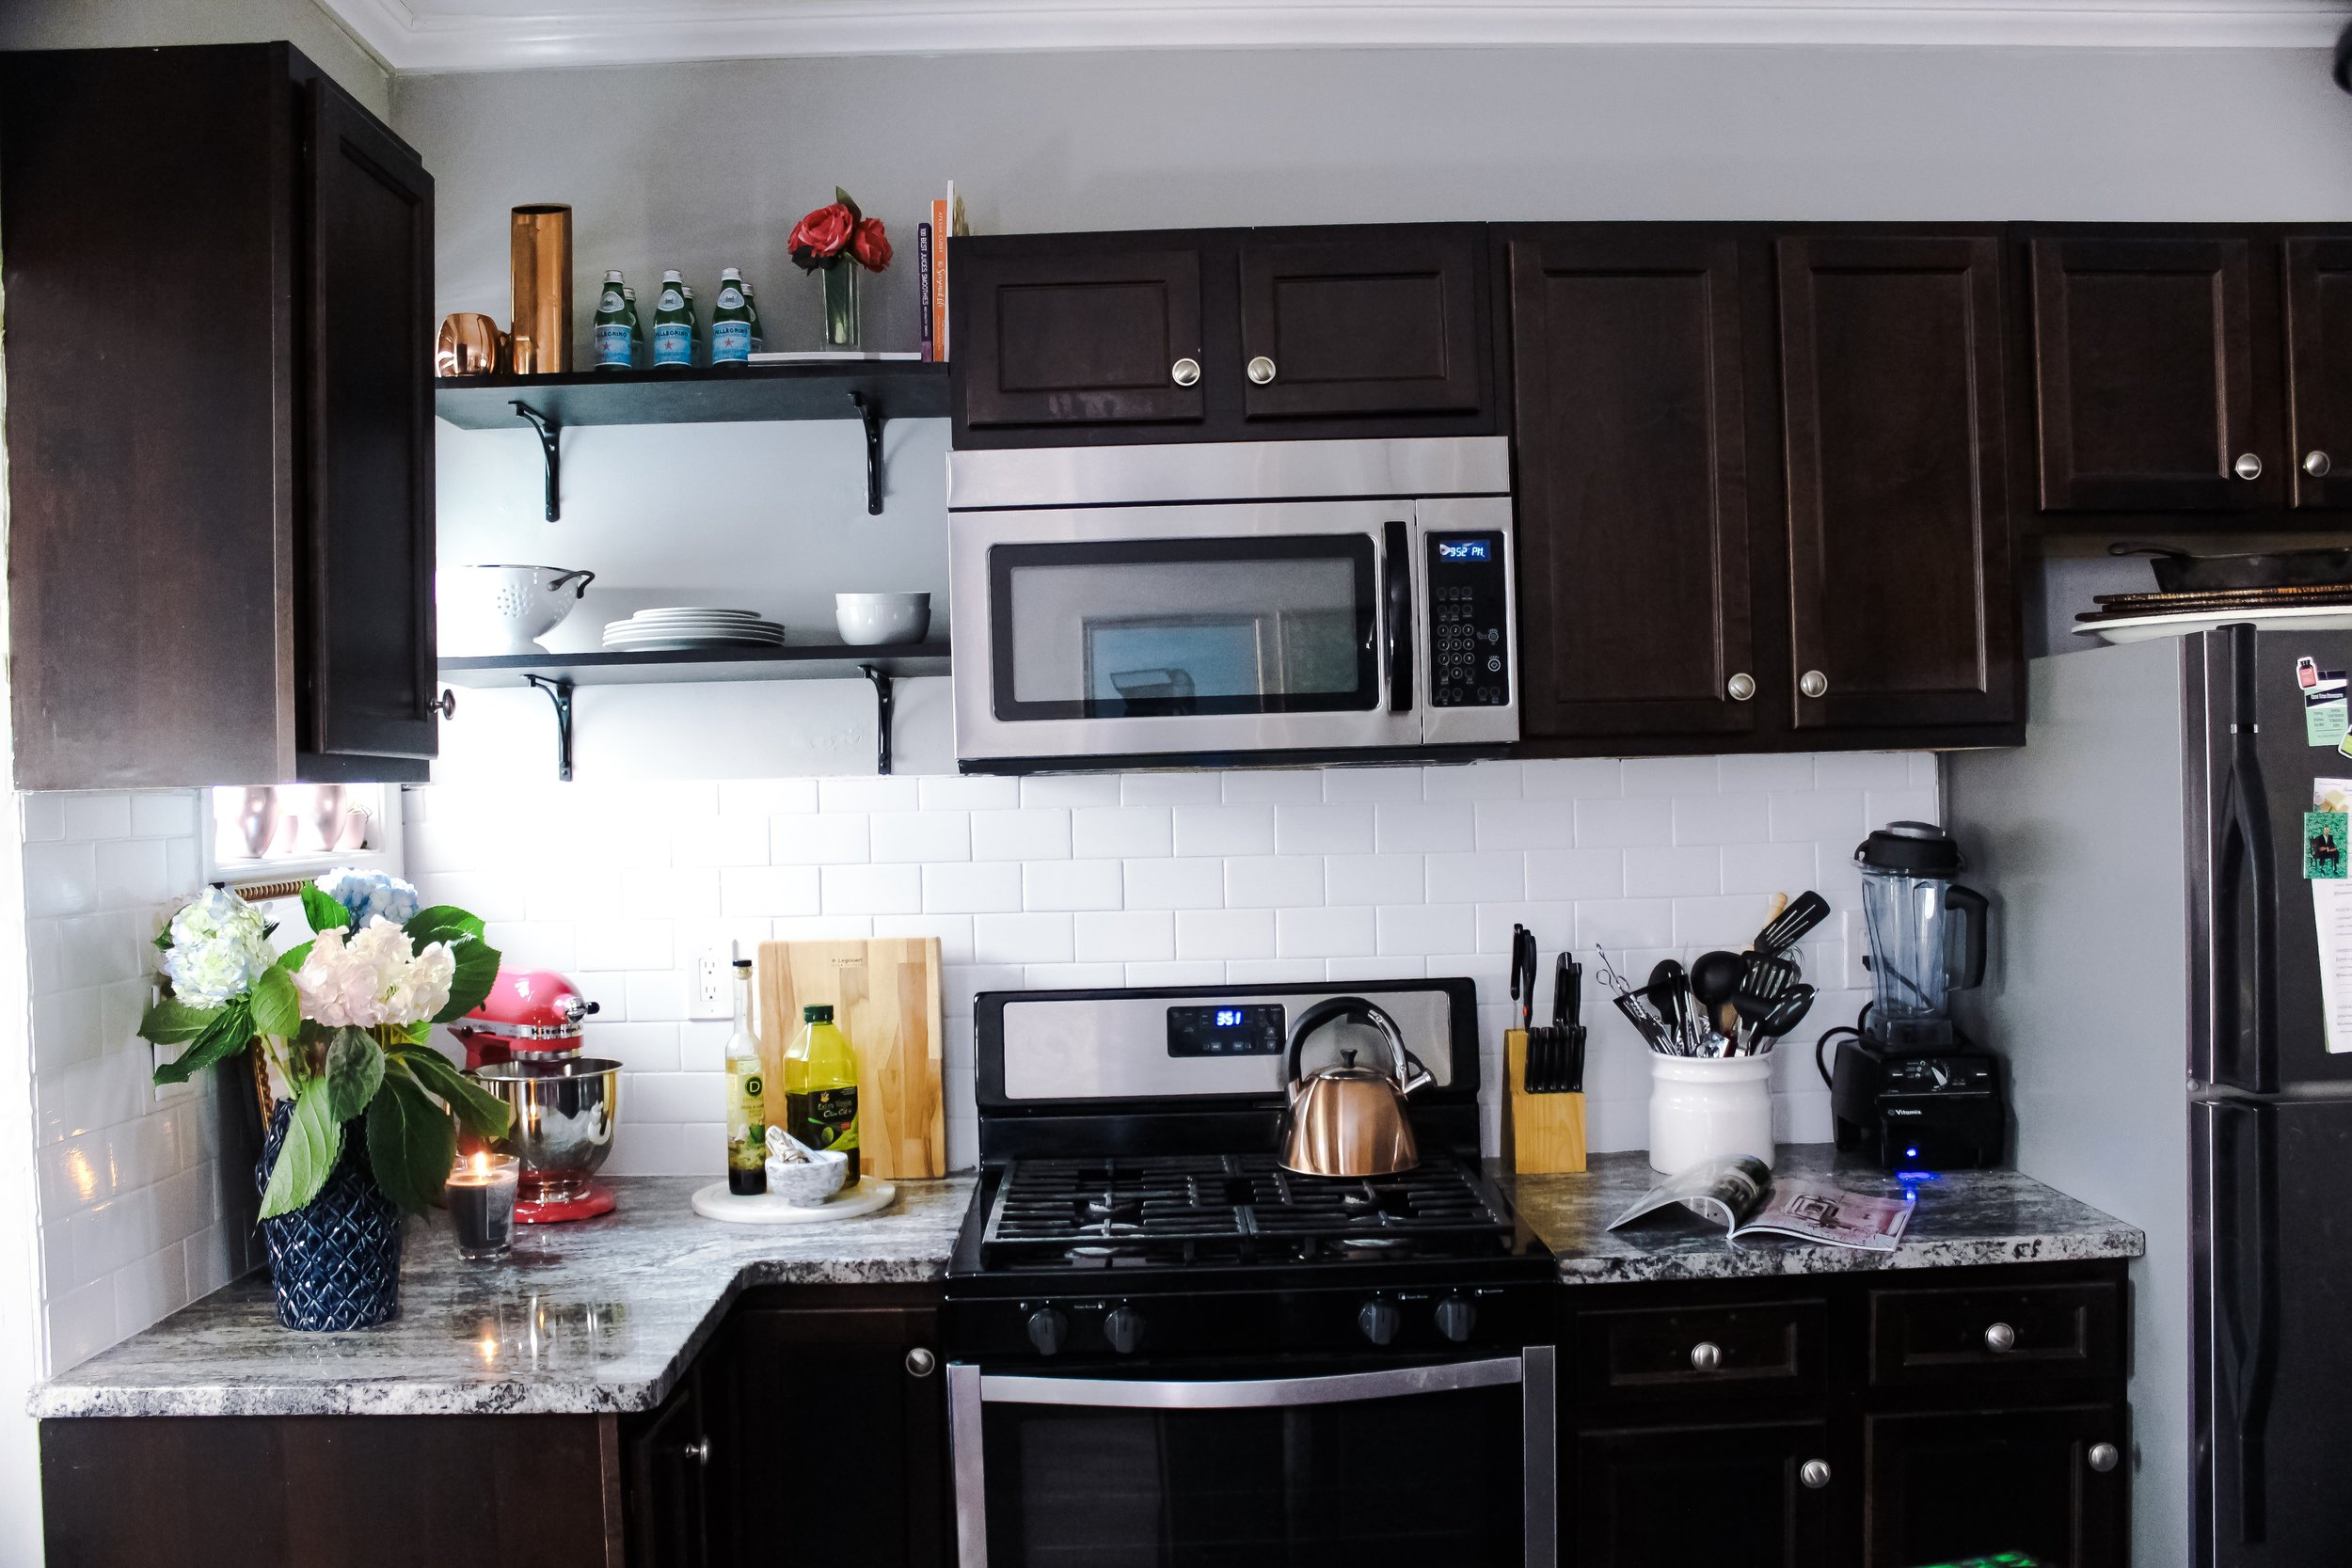 Keeping Your Kitchen Counter Clean - 7 Tips on Styling Your Kitchen